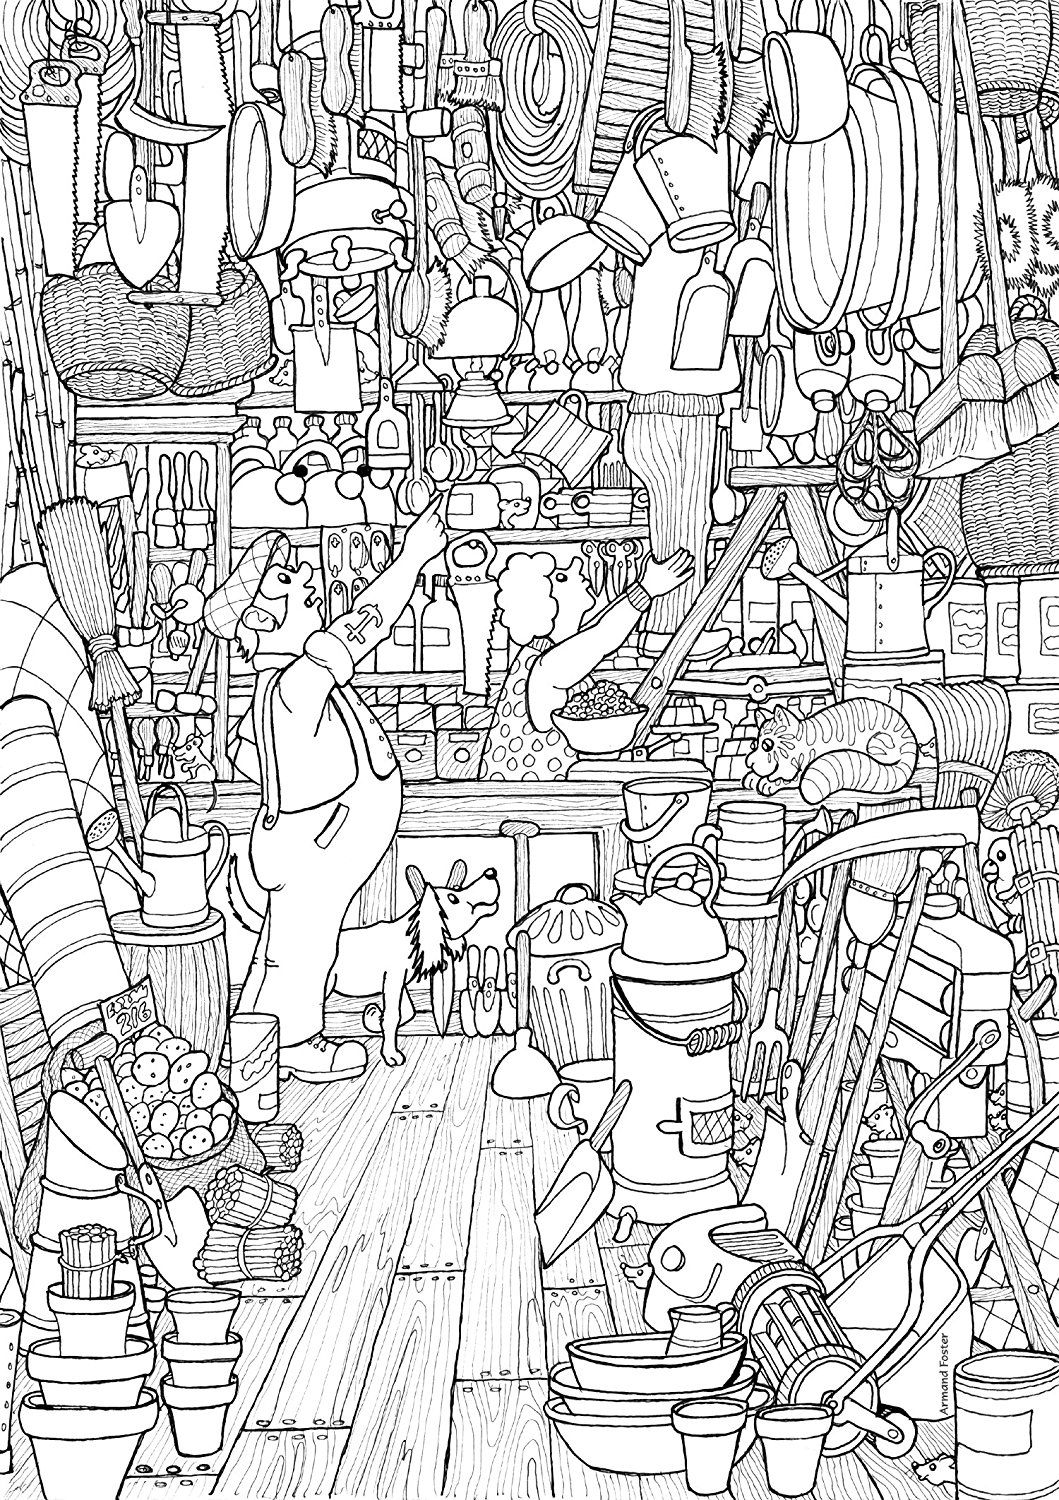 A3 Poster Colouring Pack Book No 1 Armand Foster Amazon Co Uk Office Products Adventure Time Coloring Pages Coloring Pages Coloring Books